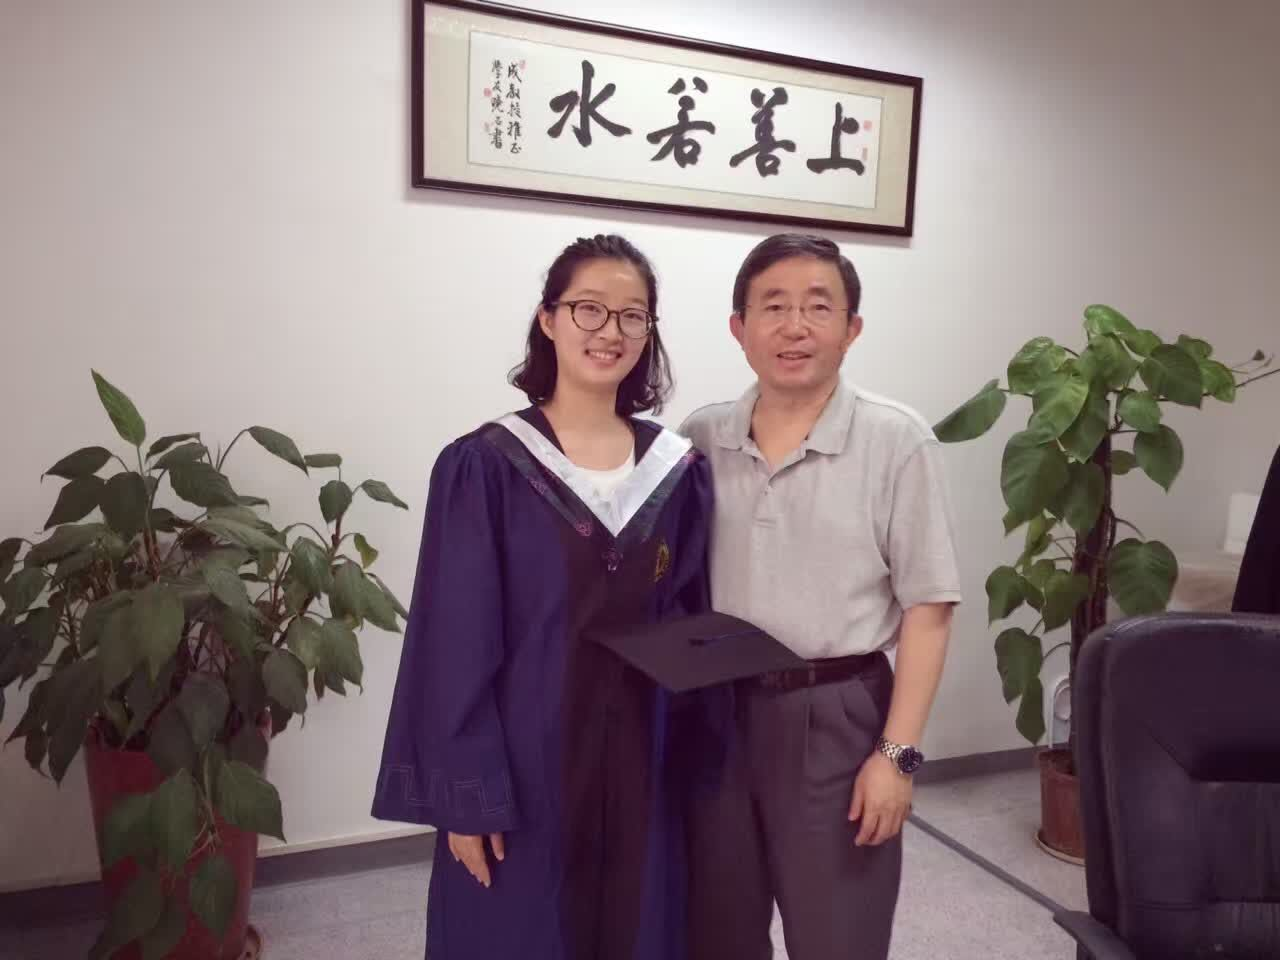 Yingying Zhang (L). (Courtesy of Yingying Zhang's family)